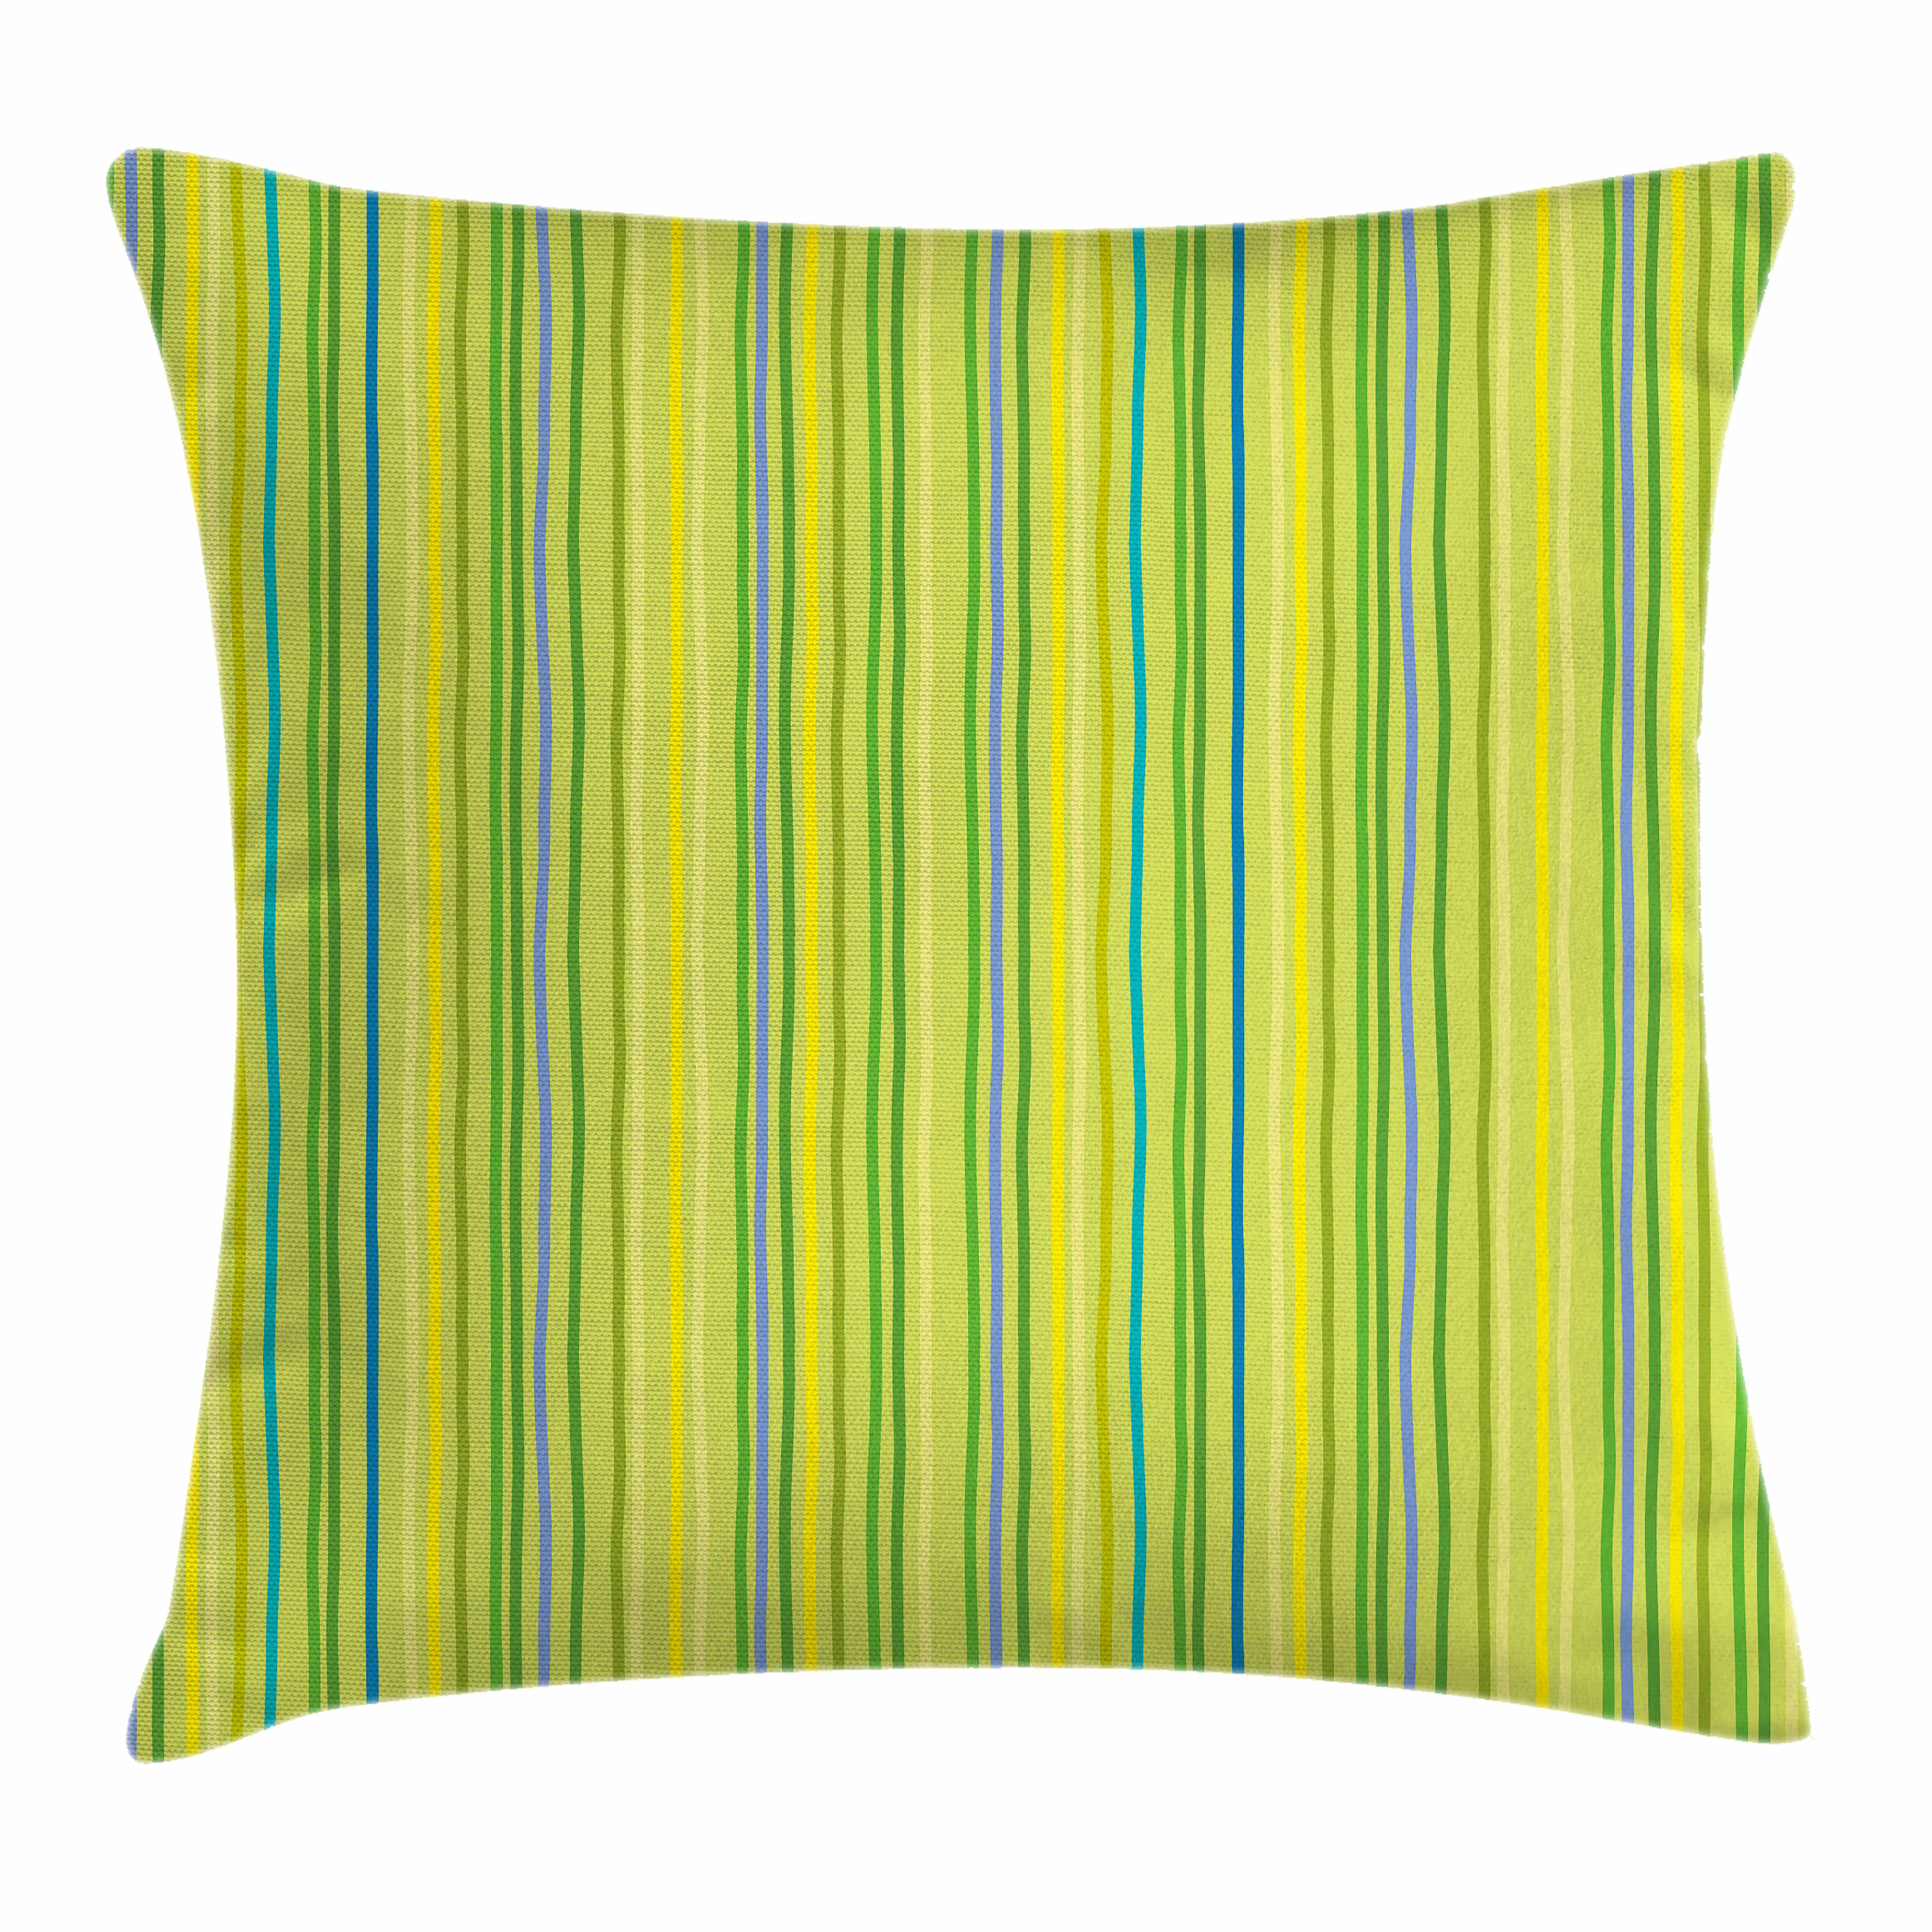 Lime Green Throw Pillow Cushion Cover Pastel Toned Vertical Bands